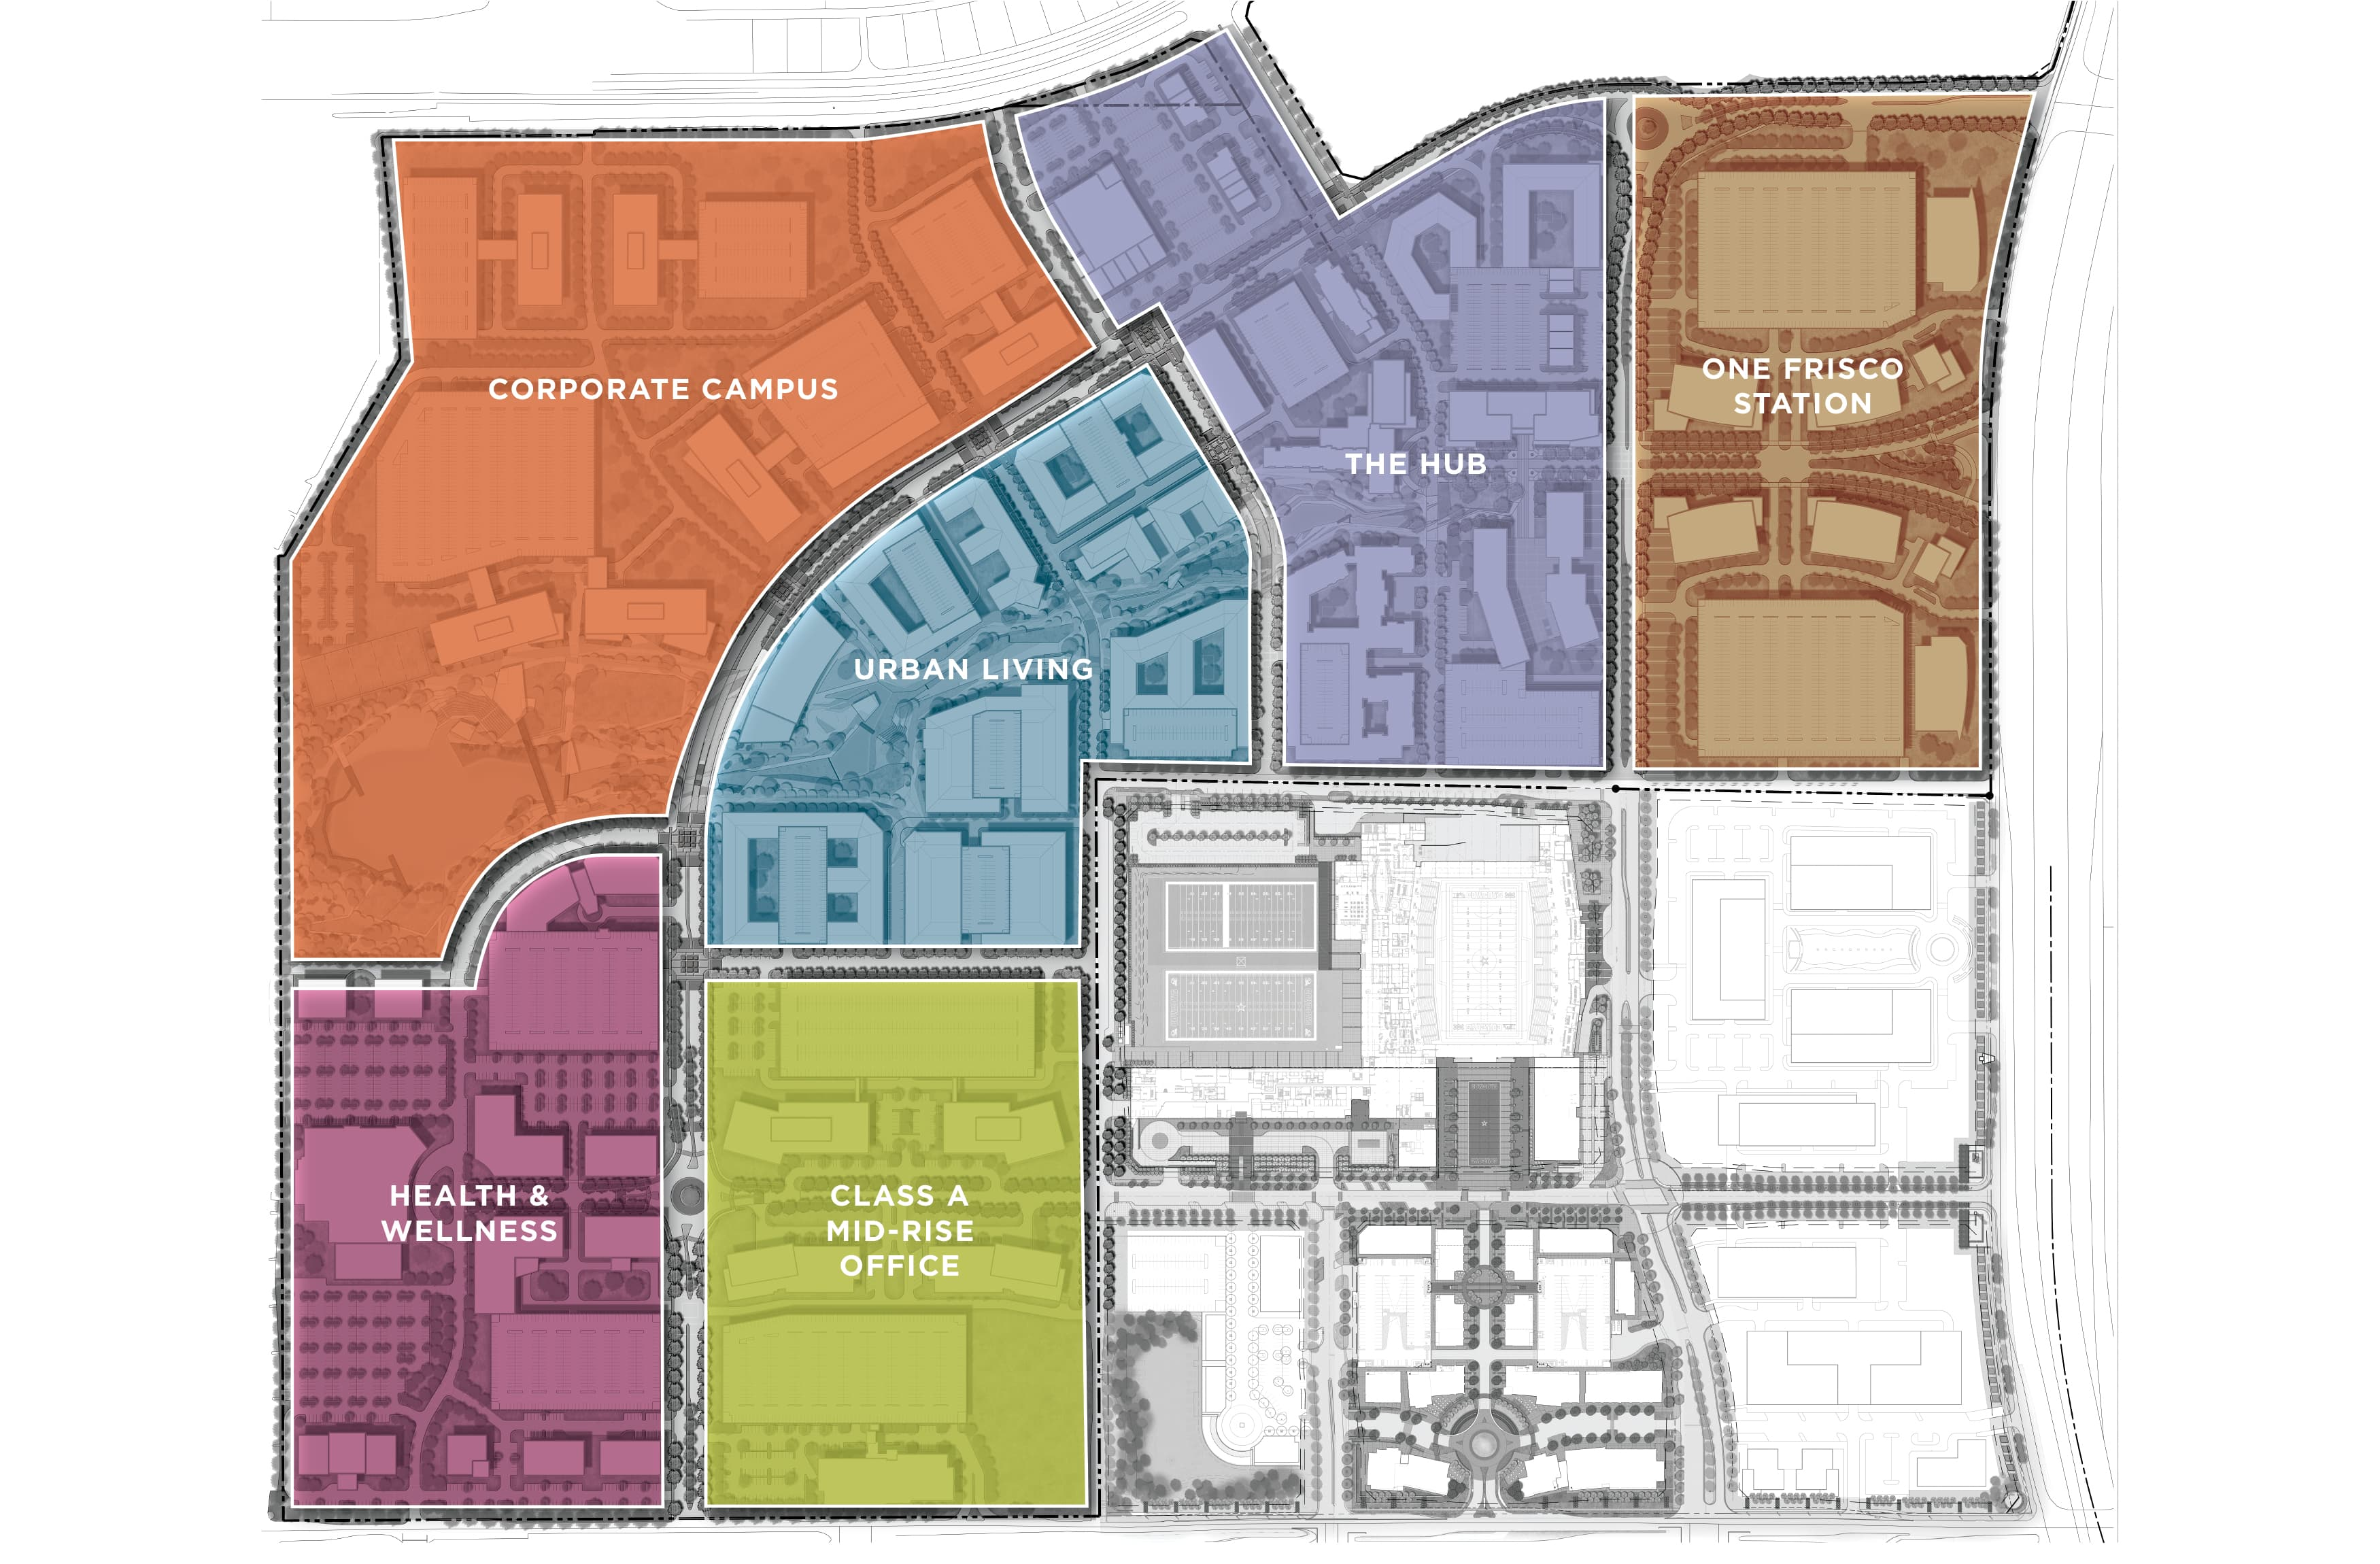 Frisco Station, a mixed-use project in Frisco, Texas, district identity map and master sign plan